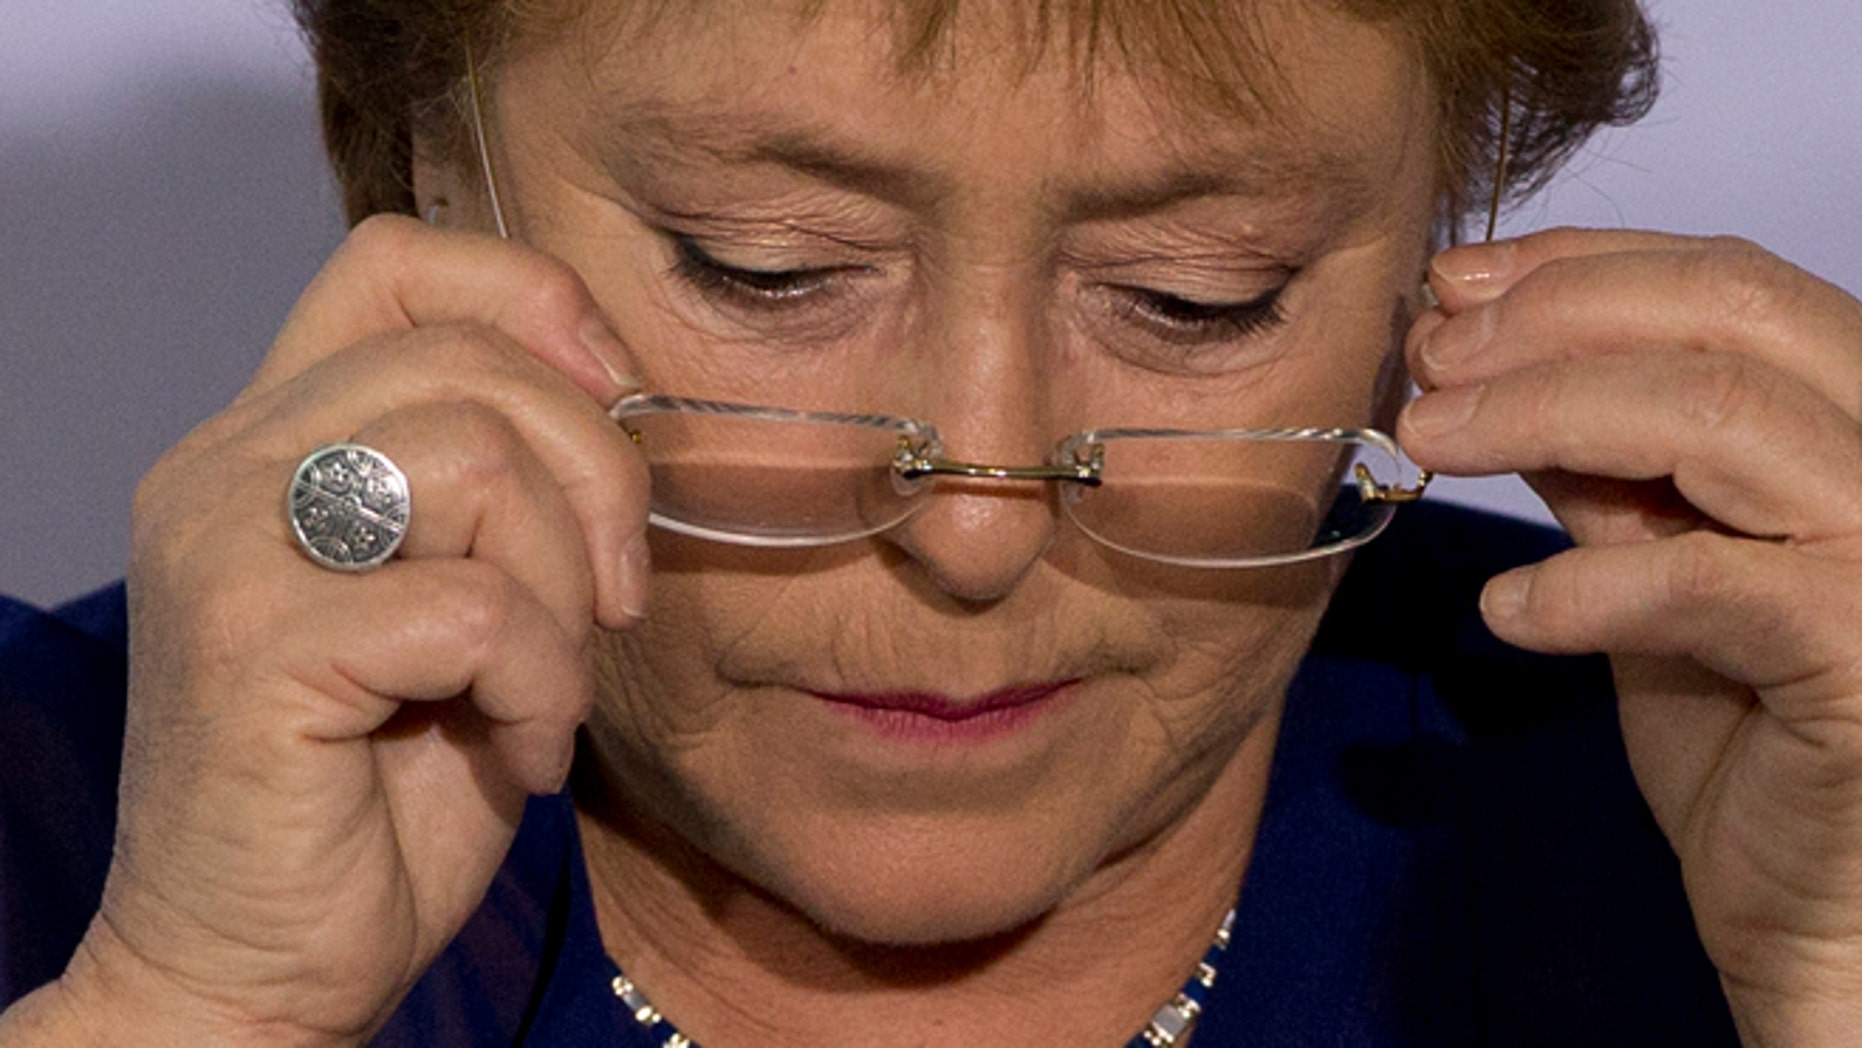 FILE - In this Dec. 9, 2014 file photo, Chile's President Michelle Bachelet puts on her glasses during a 2014 Iberoamerican Summit event in Veracruz, Mexico. Bachelets approval rating is at her lowest level ever, but she said Wednesday, April 8, 2015, that she doesn't care about her popularity, as shes focused on the well-being of Chile and pushing forward needed reforms. (AP Photo/Rebecca Blackwell, File)